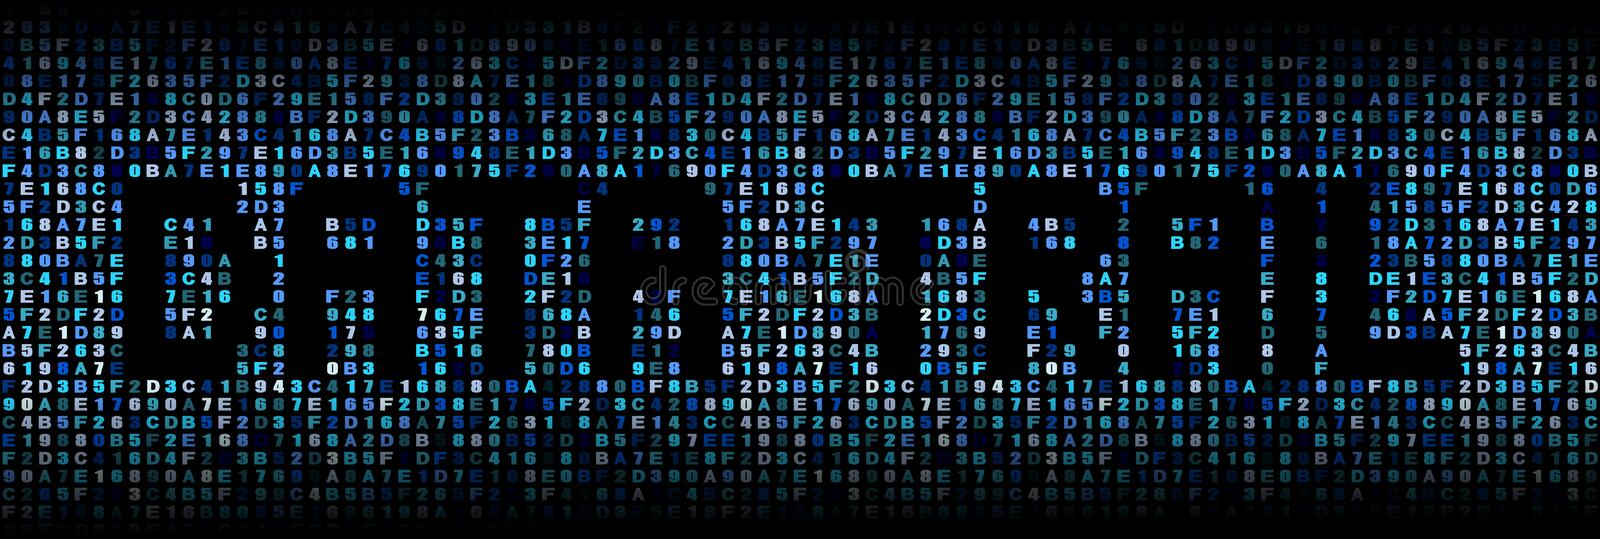 Data trail text on hex illustration royalty free stock photo